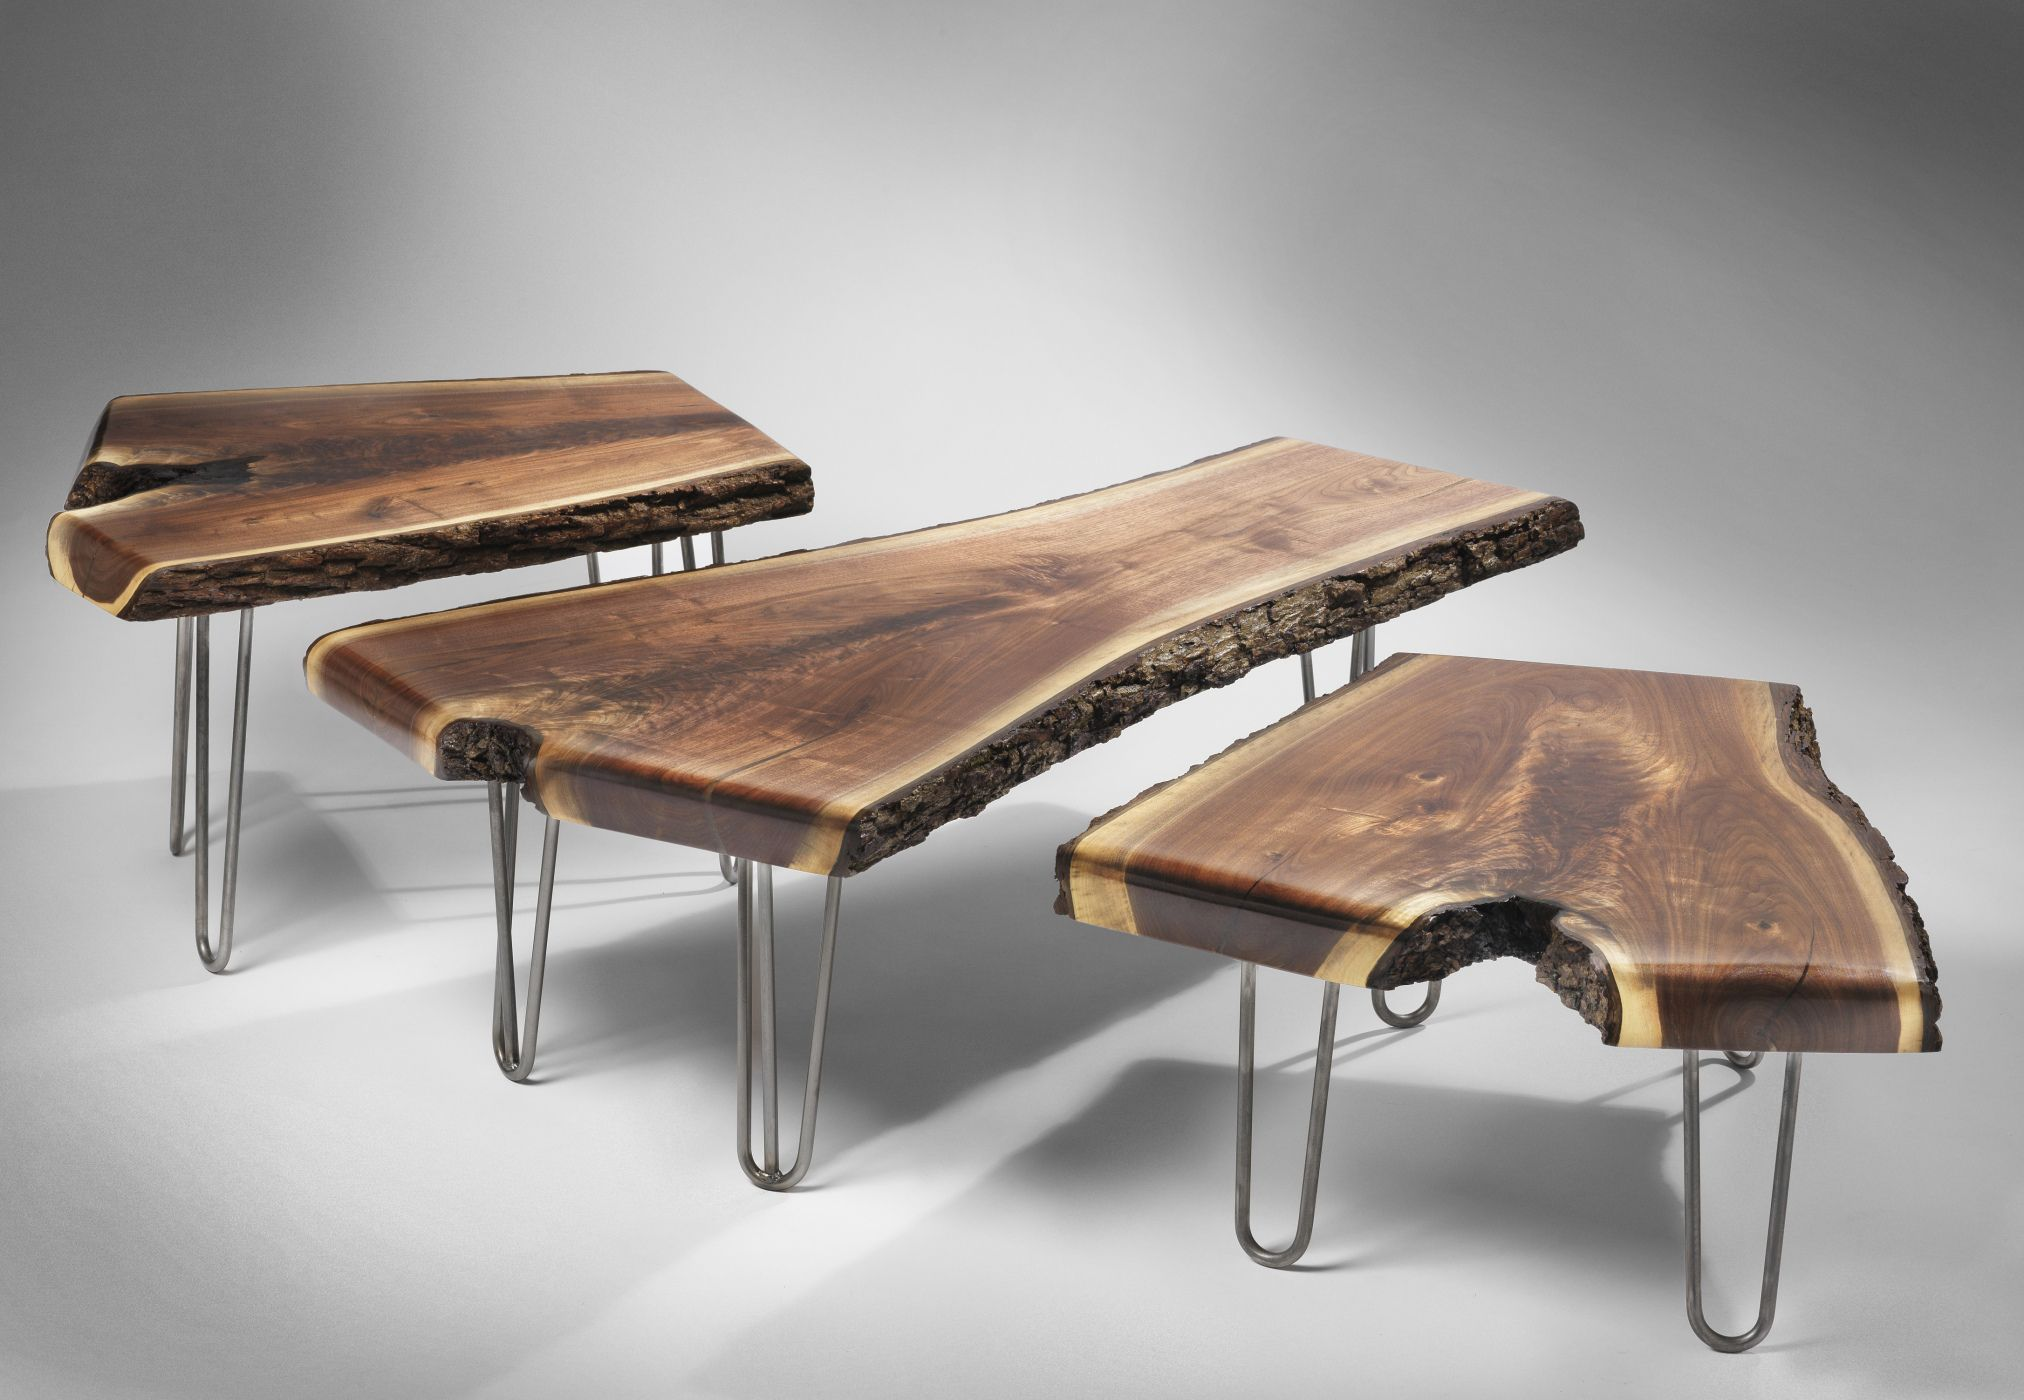 Modern Coffee Table Legs Elegant Living Room Sets Check More At Http Www Buzzfolders Com Modern Coffee Table Legs [ 1400 x 2024 Pixel ]